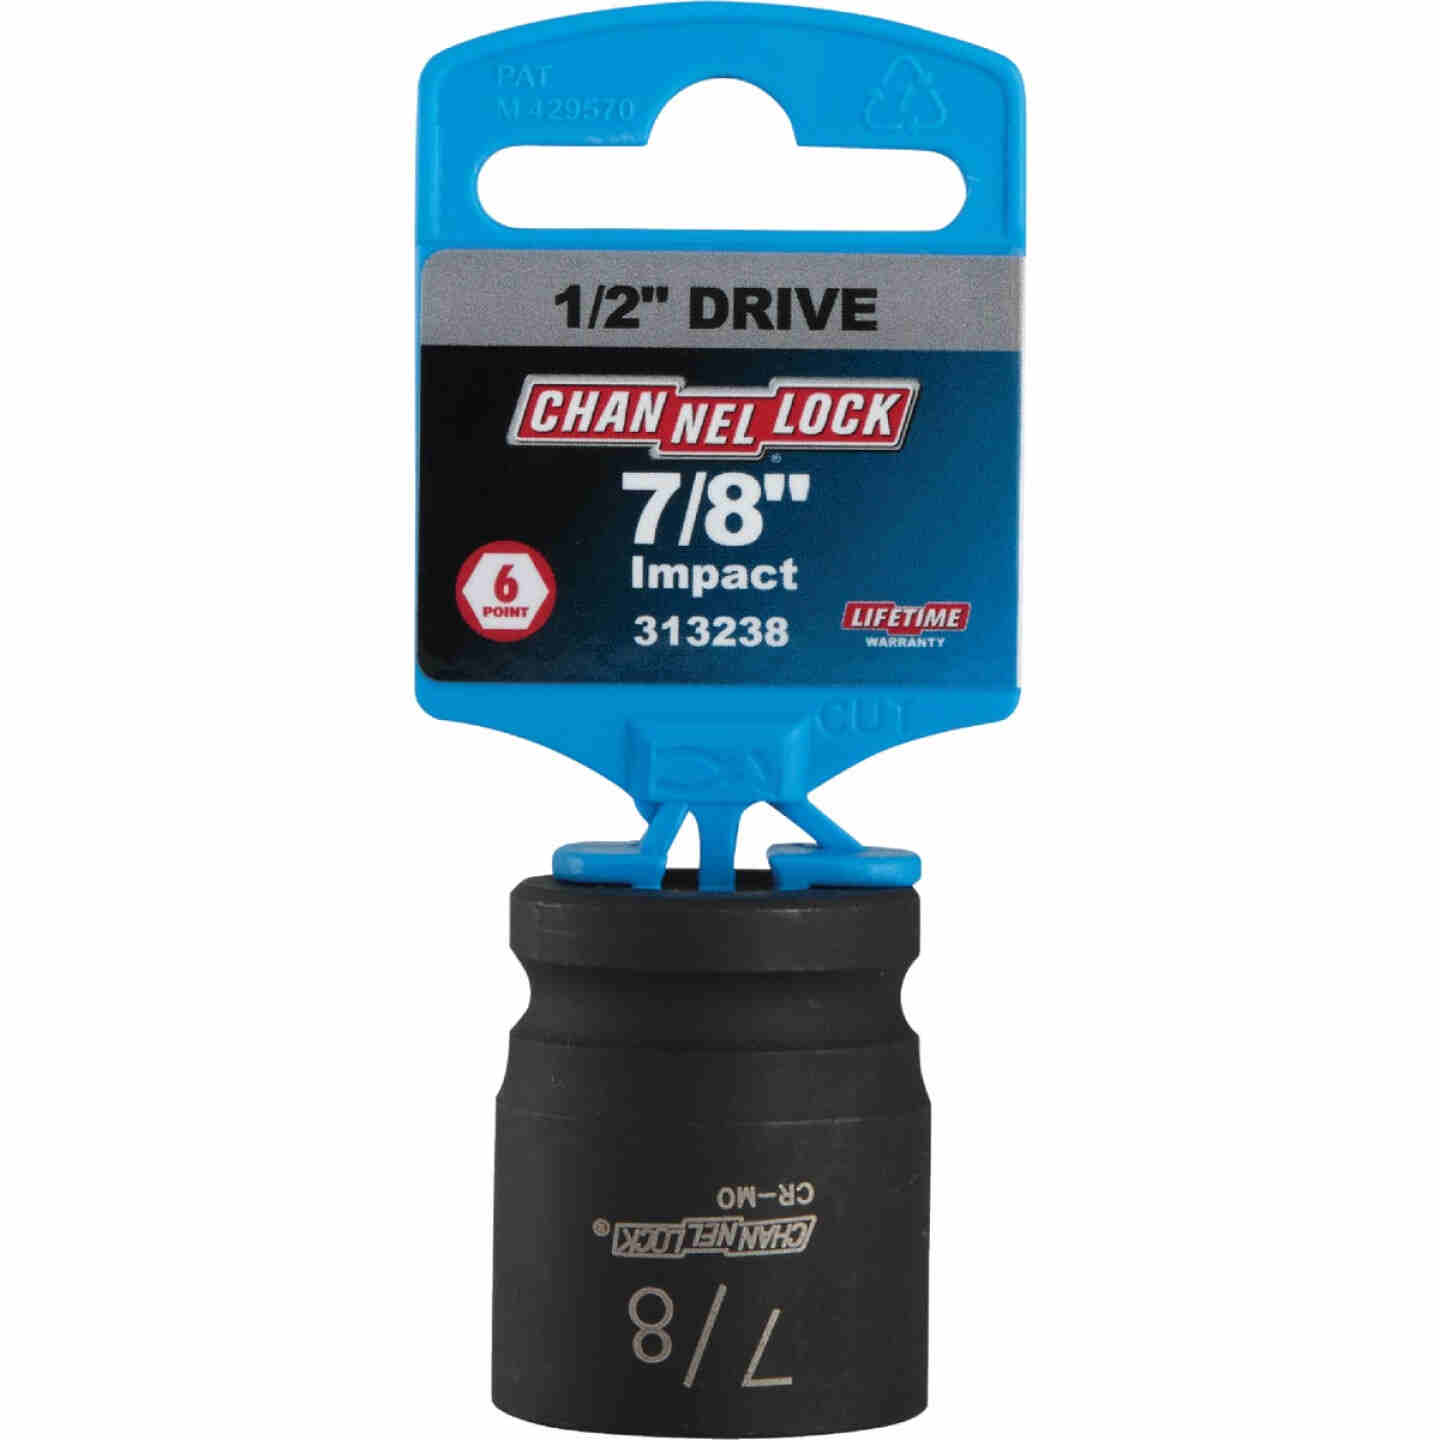 Channellock 1/2 In. Drive 7/8 In. 6-Point Shallow Standard Impact Socket Image 2